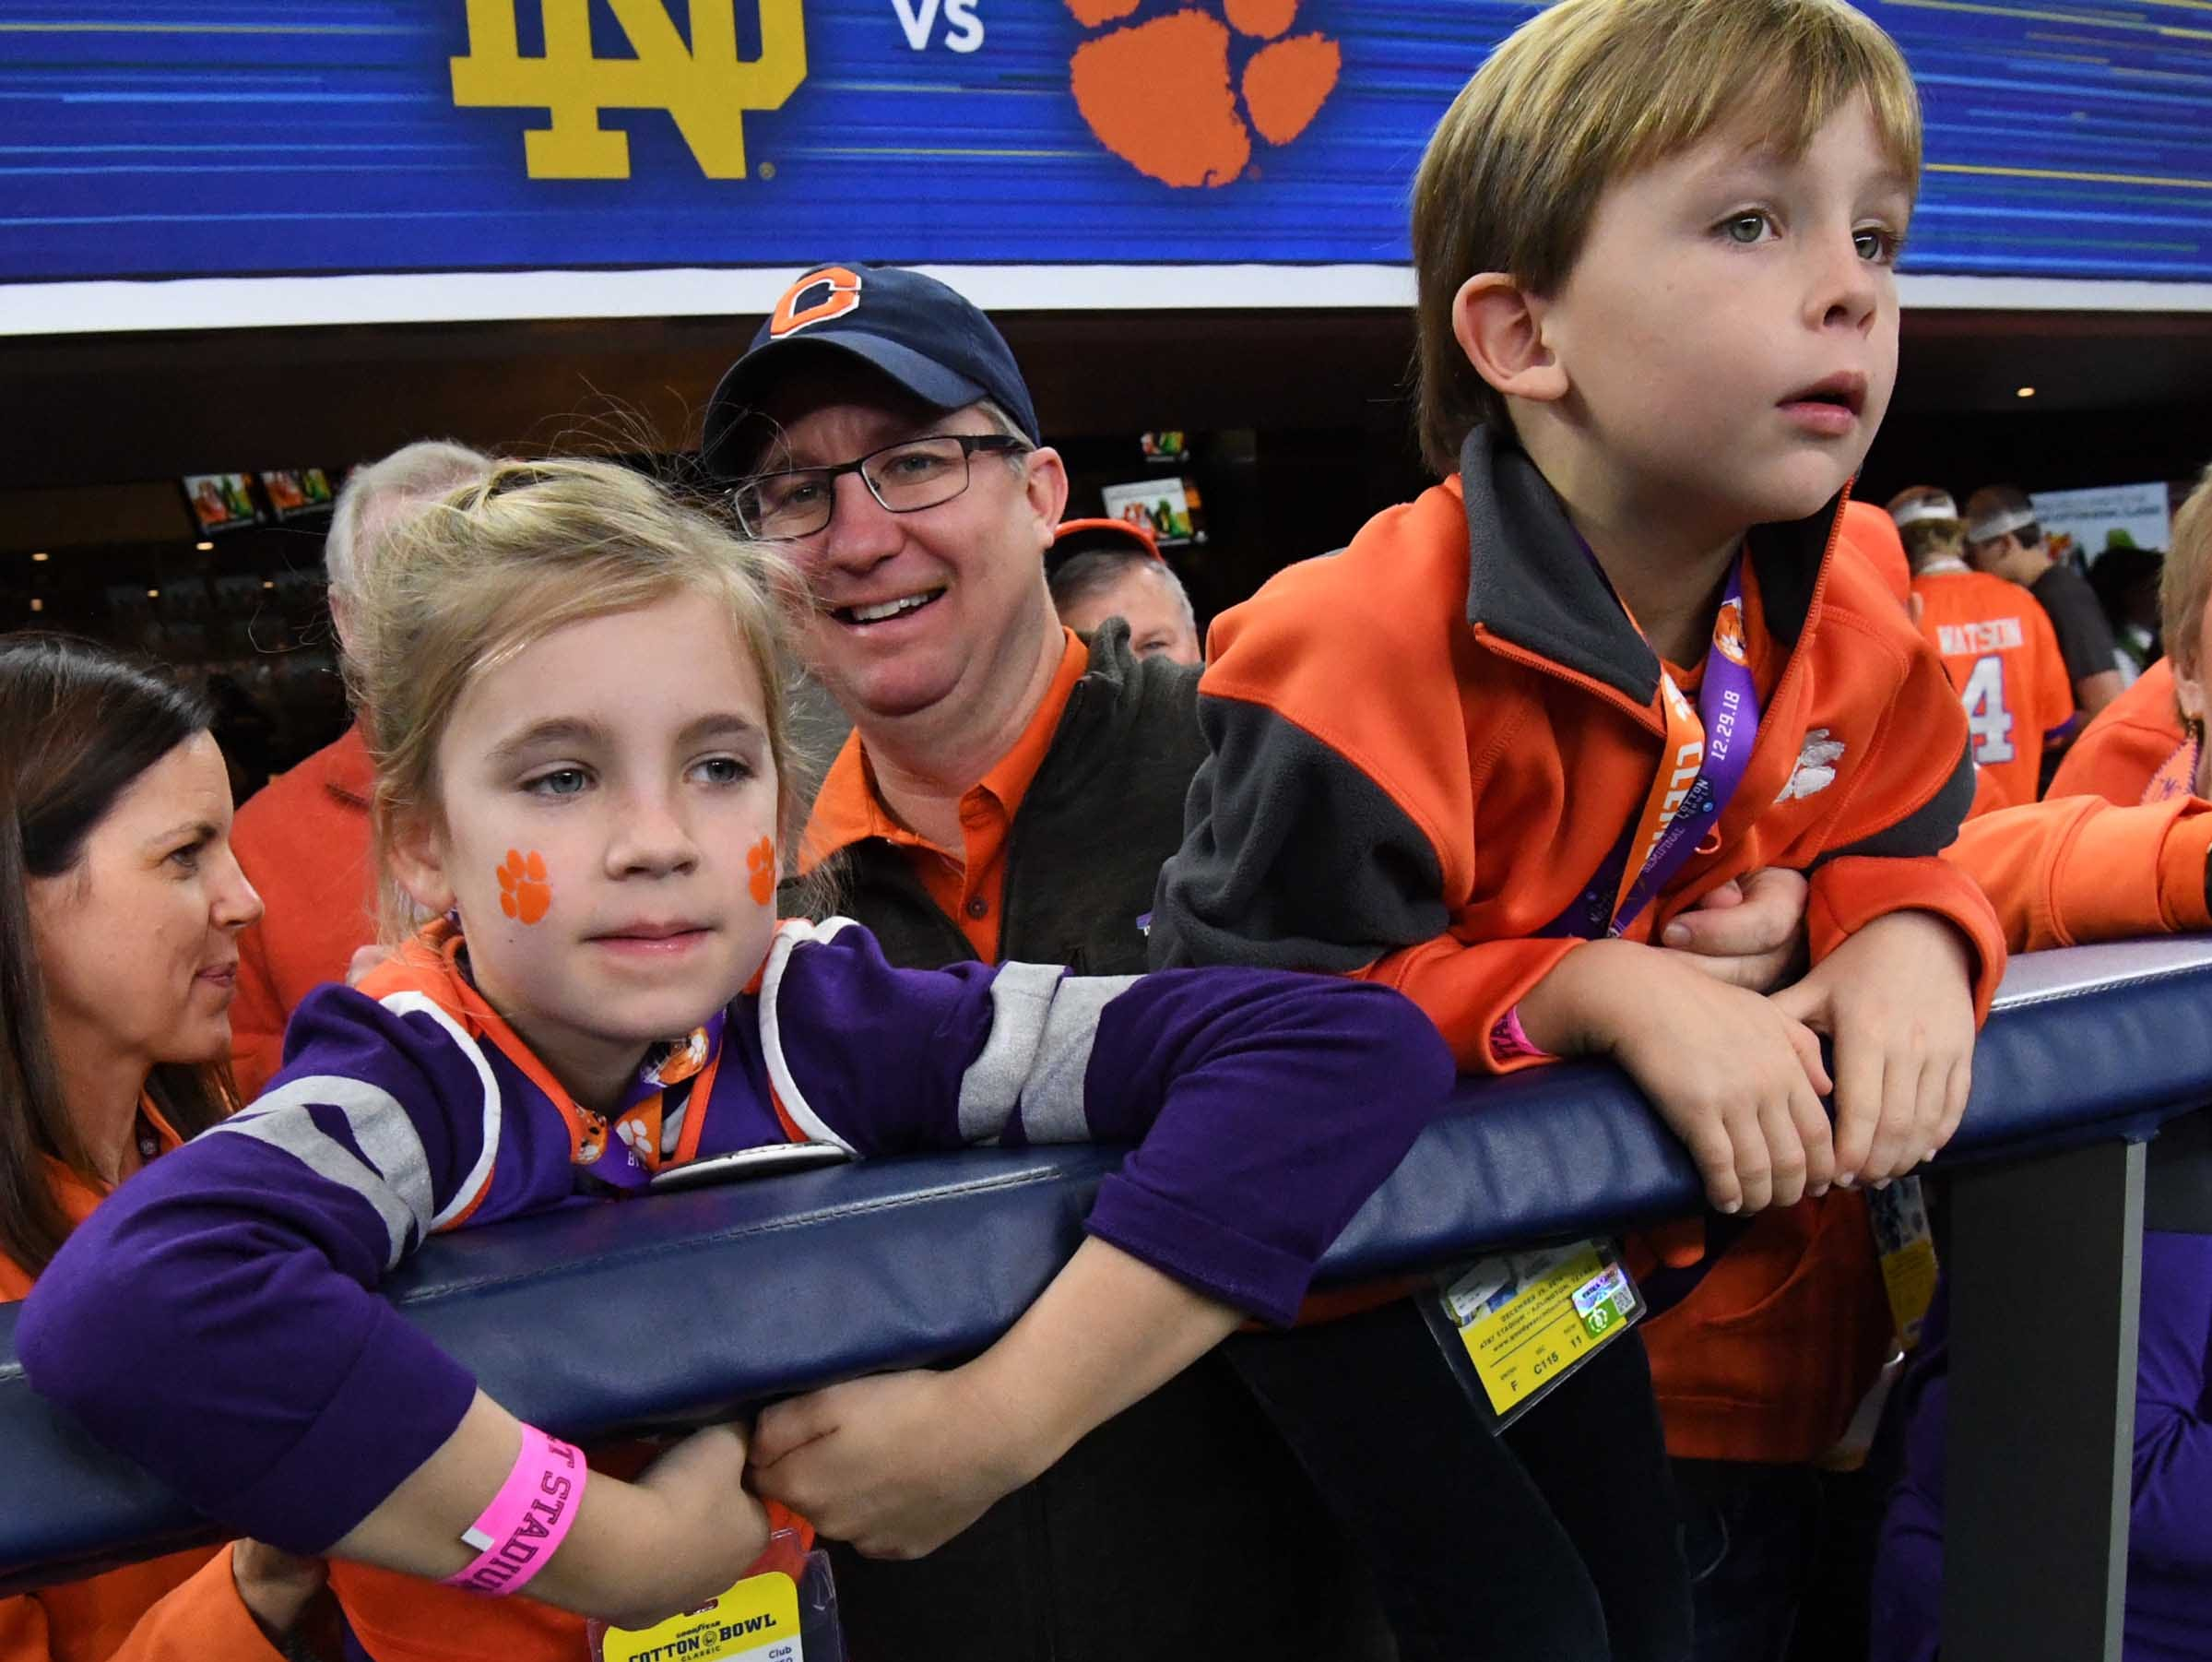 Ann Bullwinkel, left, her dad George, and brother George, Jr. watch warm ups before the first quarter of the College Football Playoff Semifinal at the Goodyear Cotton Bowl Classic at AT&T Stadium in Arlington, Texas Saturday, December 29, 2018.